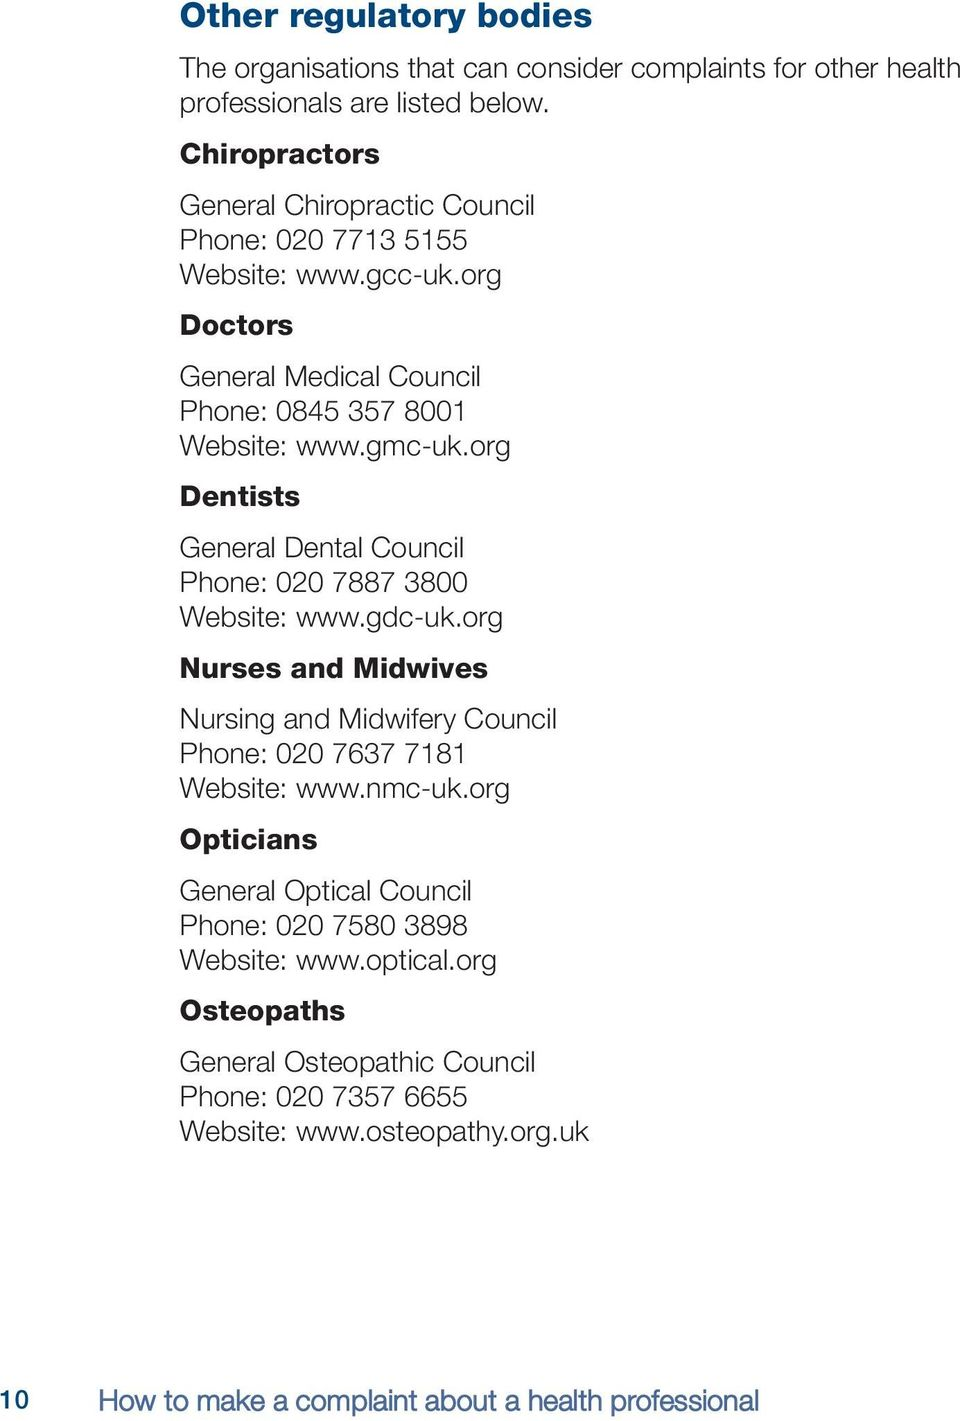 org Dentists General Dental Council Phone: 020 7887 3800 Website: www.gdc-uk.org Nurses and Midwives Nursing and Midwifery Council Phone: 020 7637 7181 Website: www.